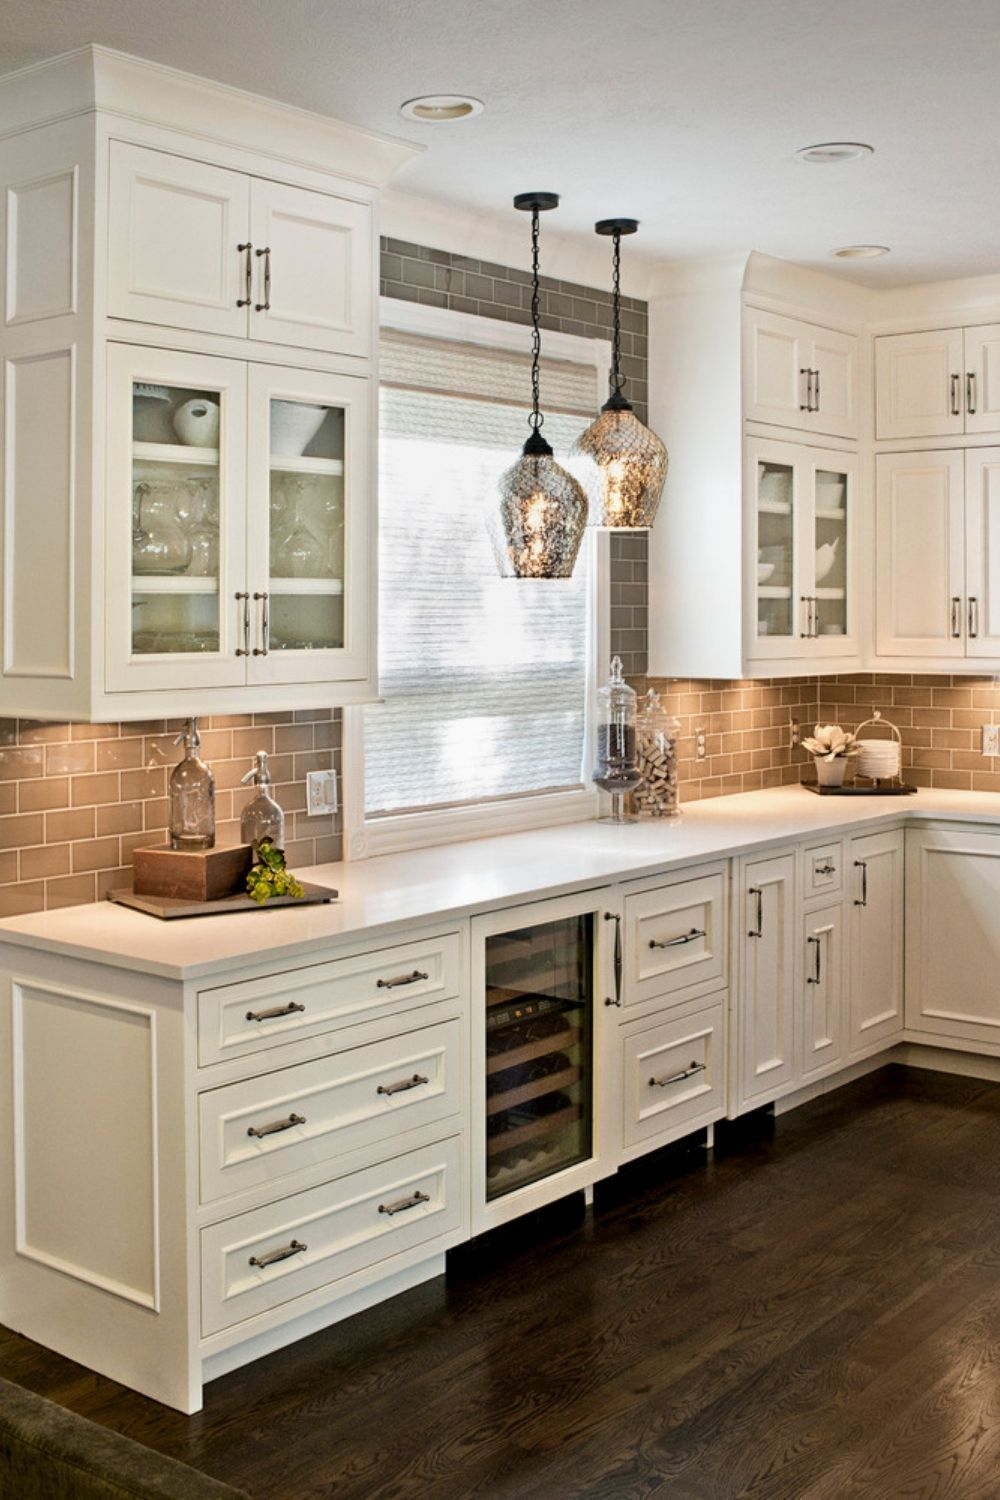 Stunning White Kitchen Cabinets Ideas To Brighten Your Kitchen Kitchen Design Kitchen Cabinet Design New Kitchen Cabinets